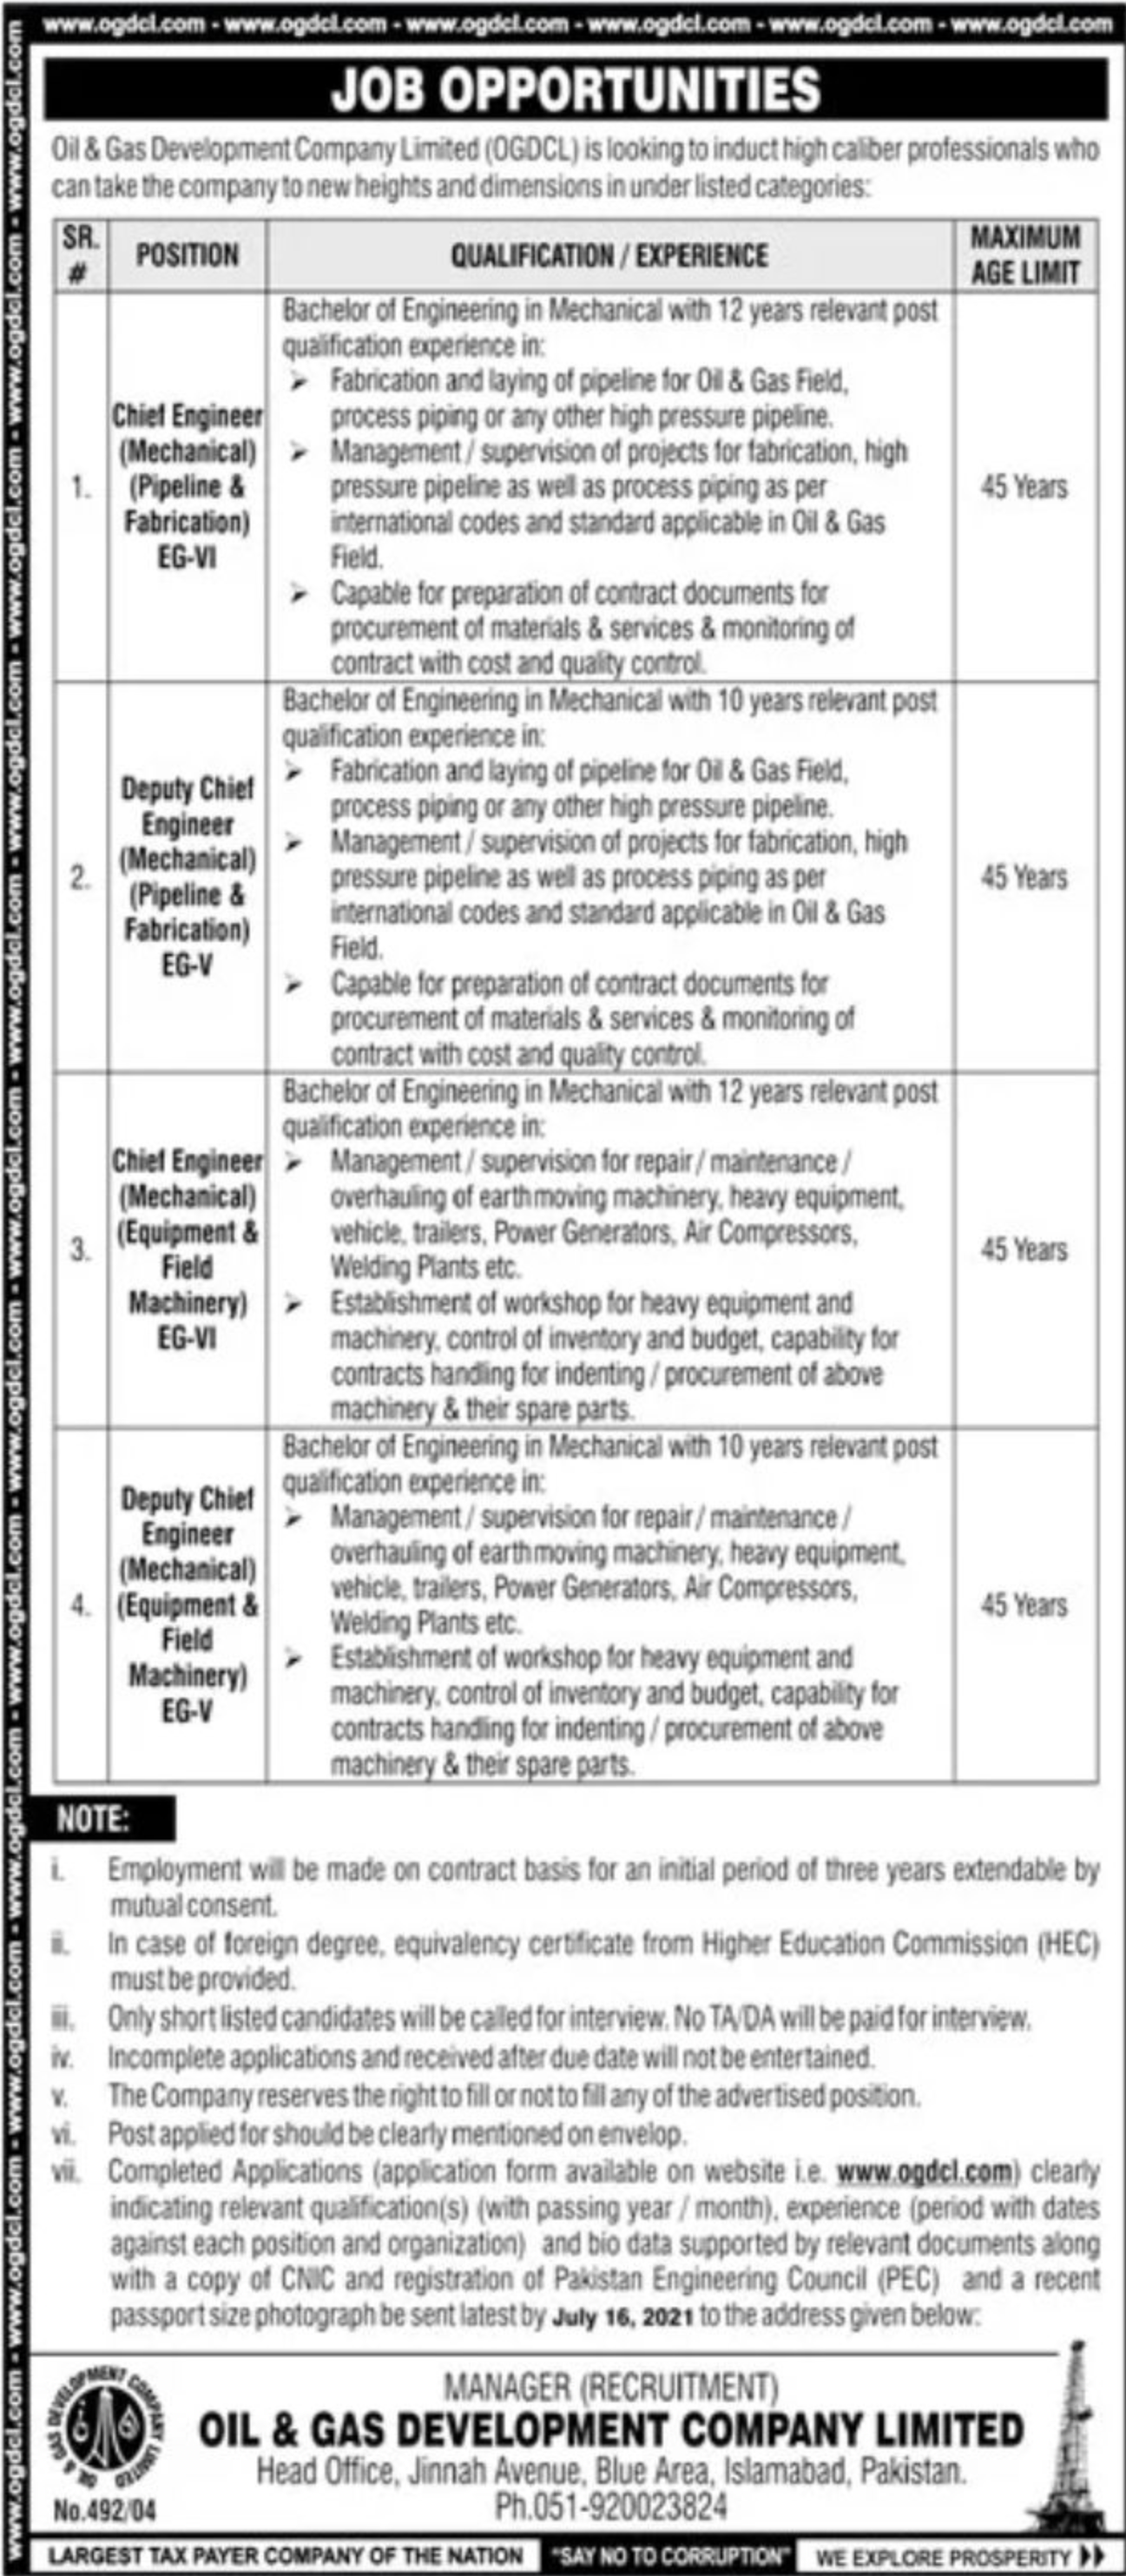 OGDCL Oil & Gas Development Company Limited Vacancies 2021 3